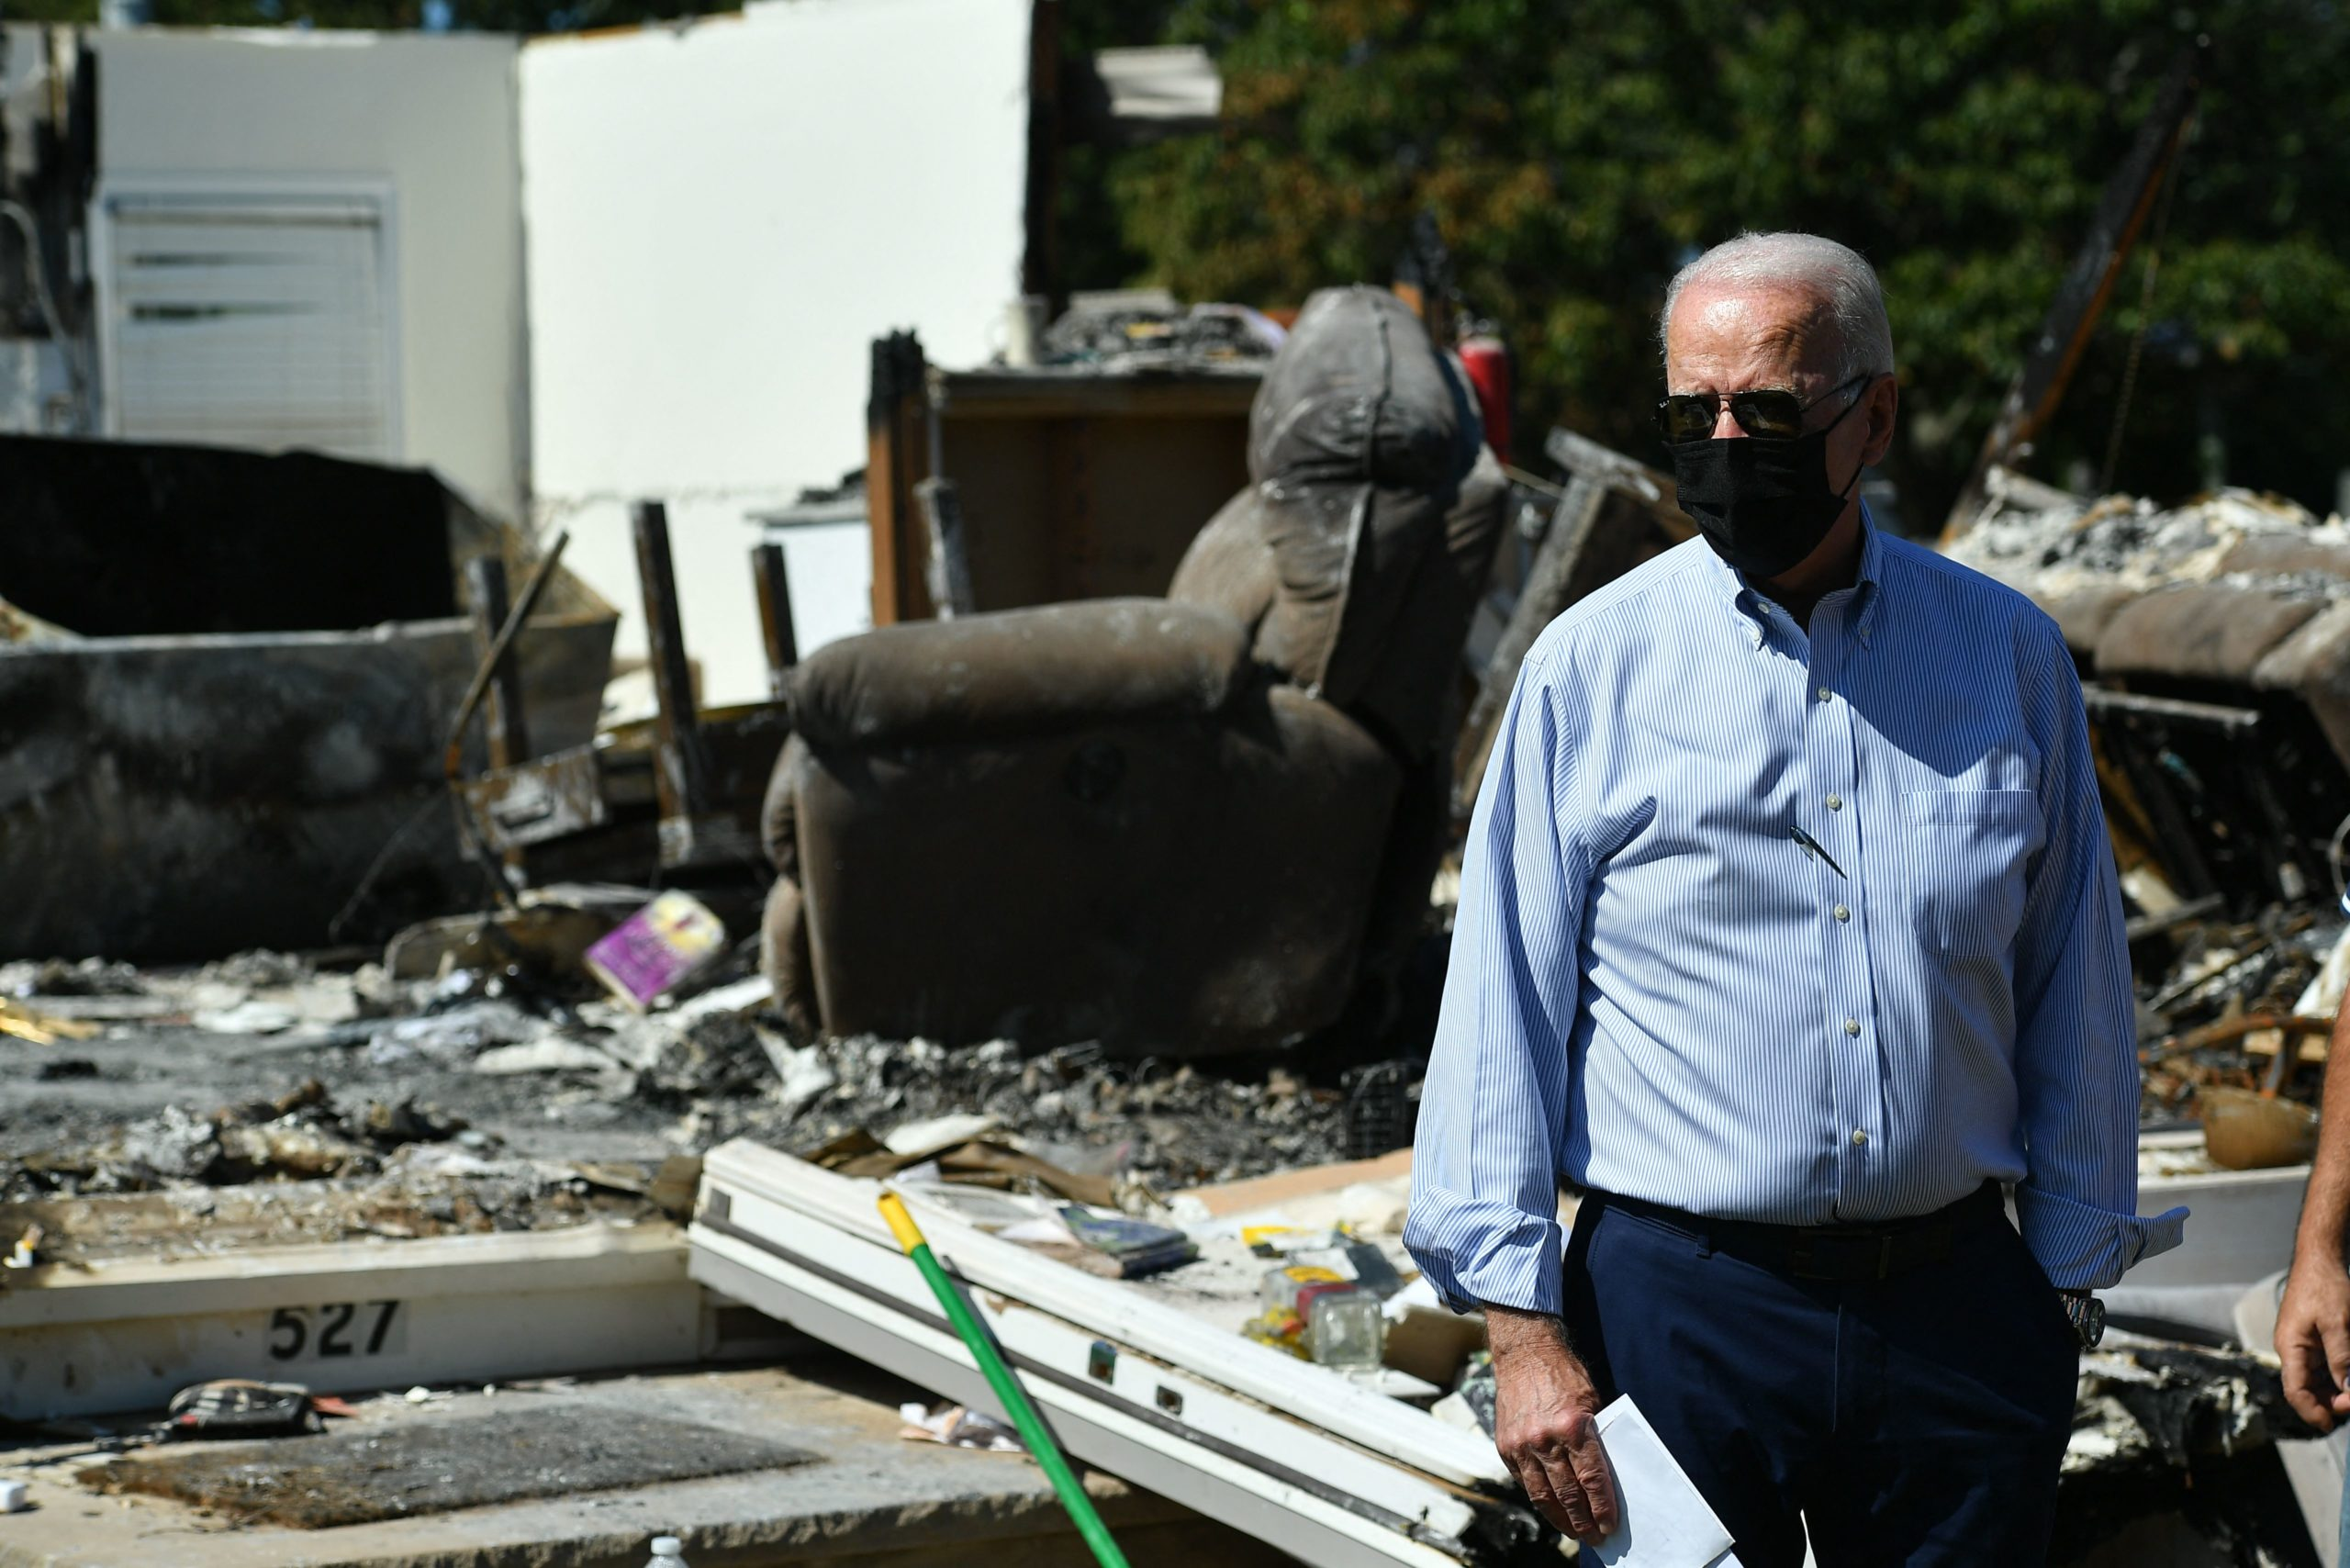 President Joe Biden tours a neighborhood affected by Hurricane Ida in Manville, New Jersey Tuesday. His budget and the infrastructure bill, include major funding for climate change mitigation measures as the country grapples with more frequent extreme weather. (MANDEL NGAN/AFP via Getty Images)